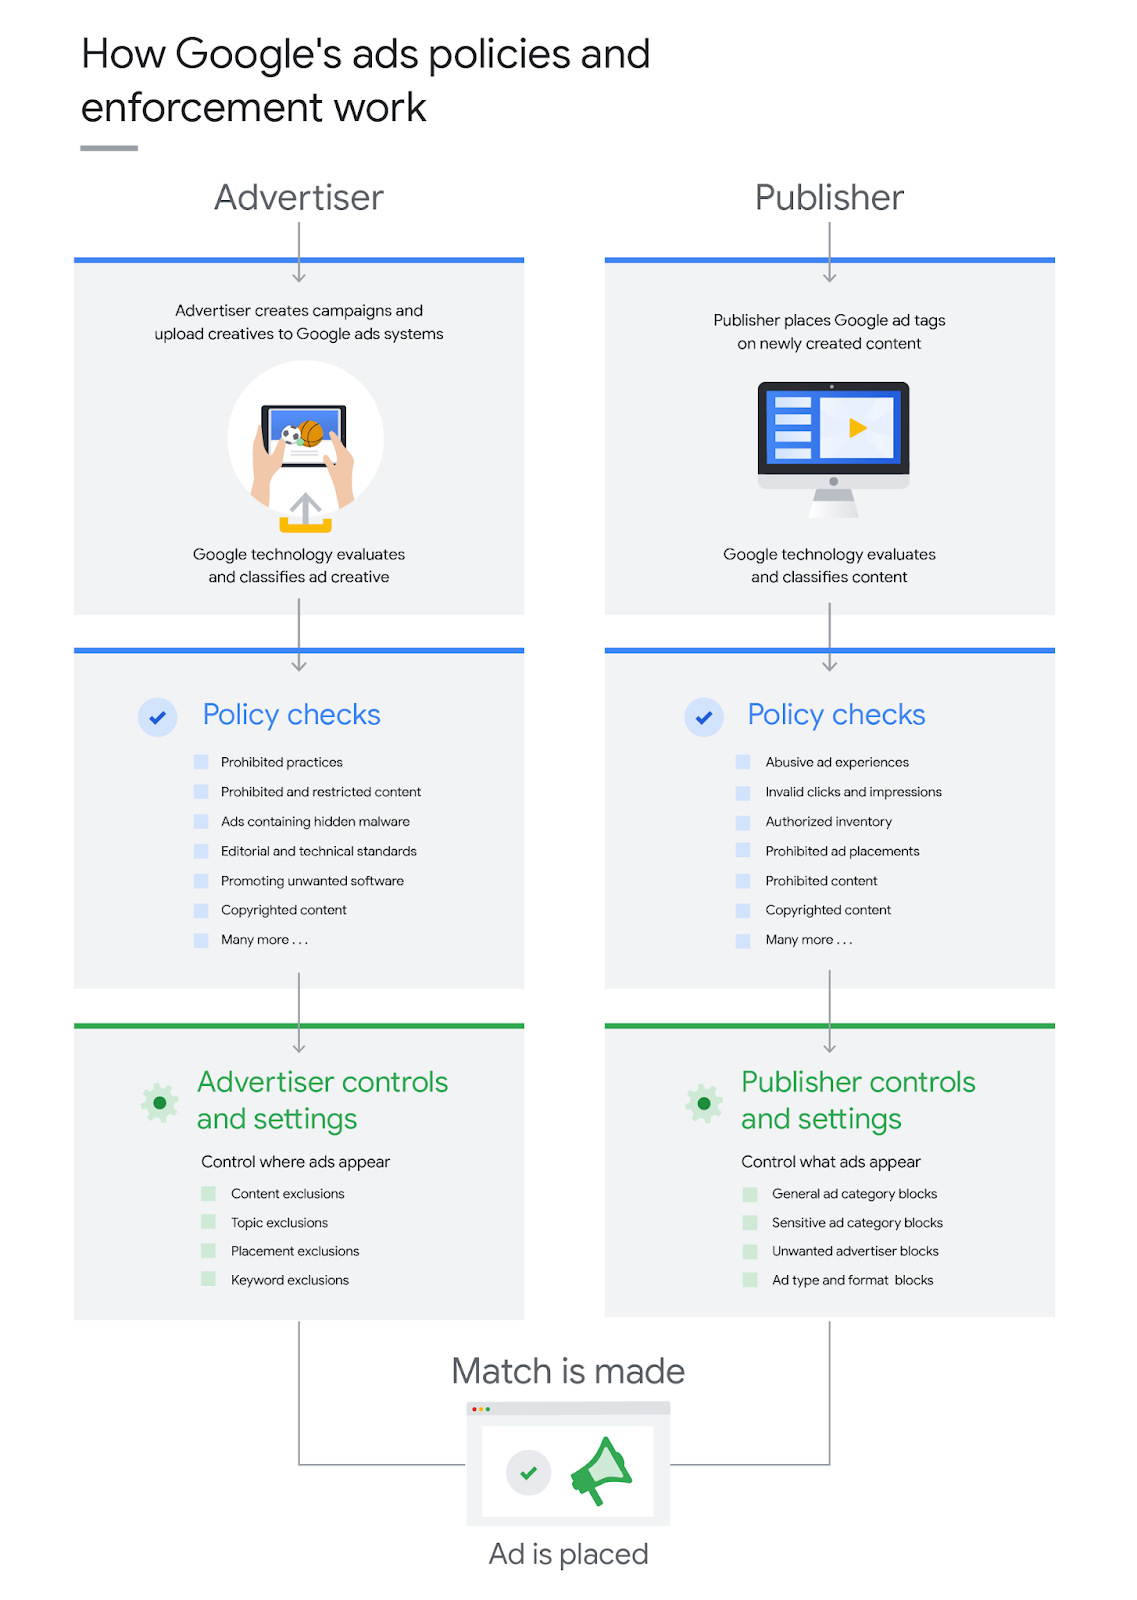 How Google's ads policies and enforcement work